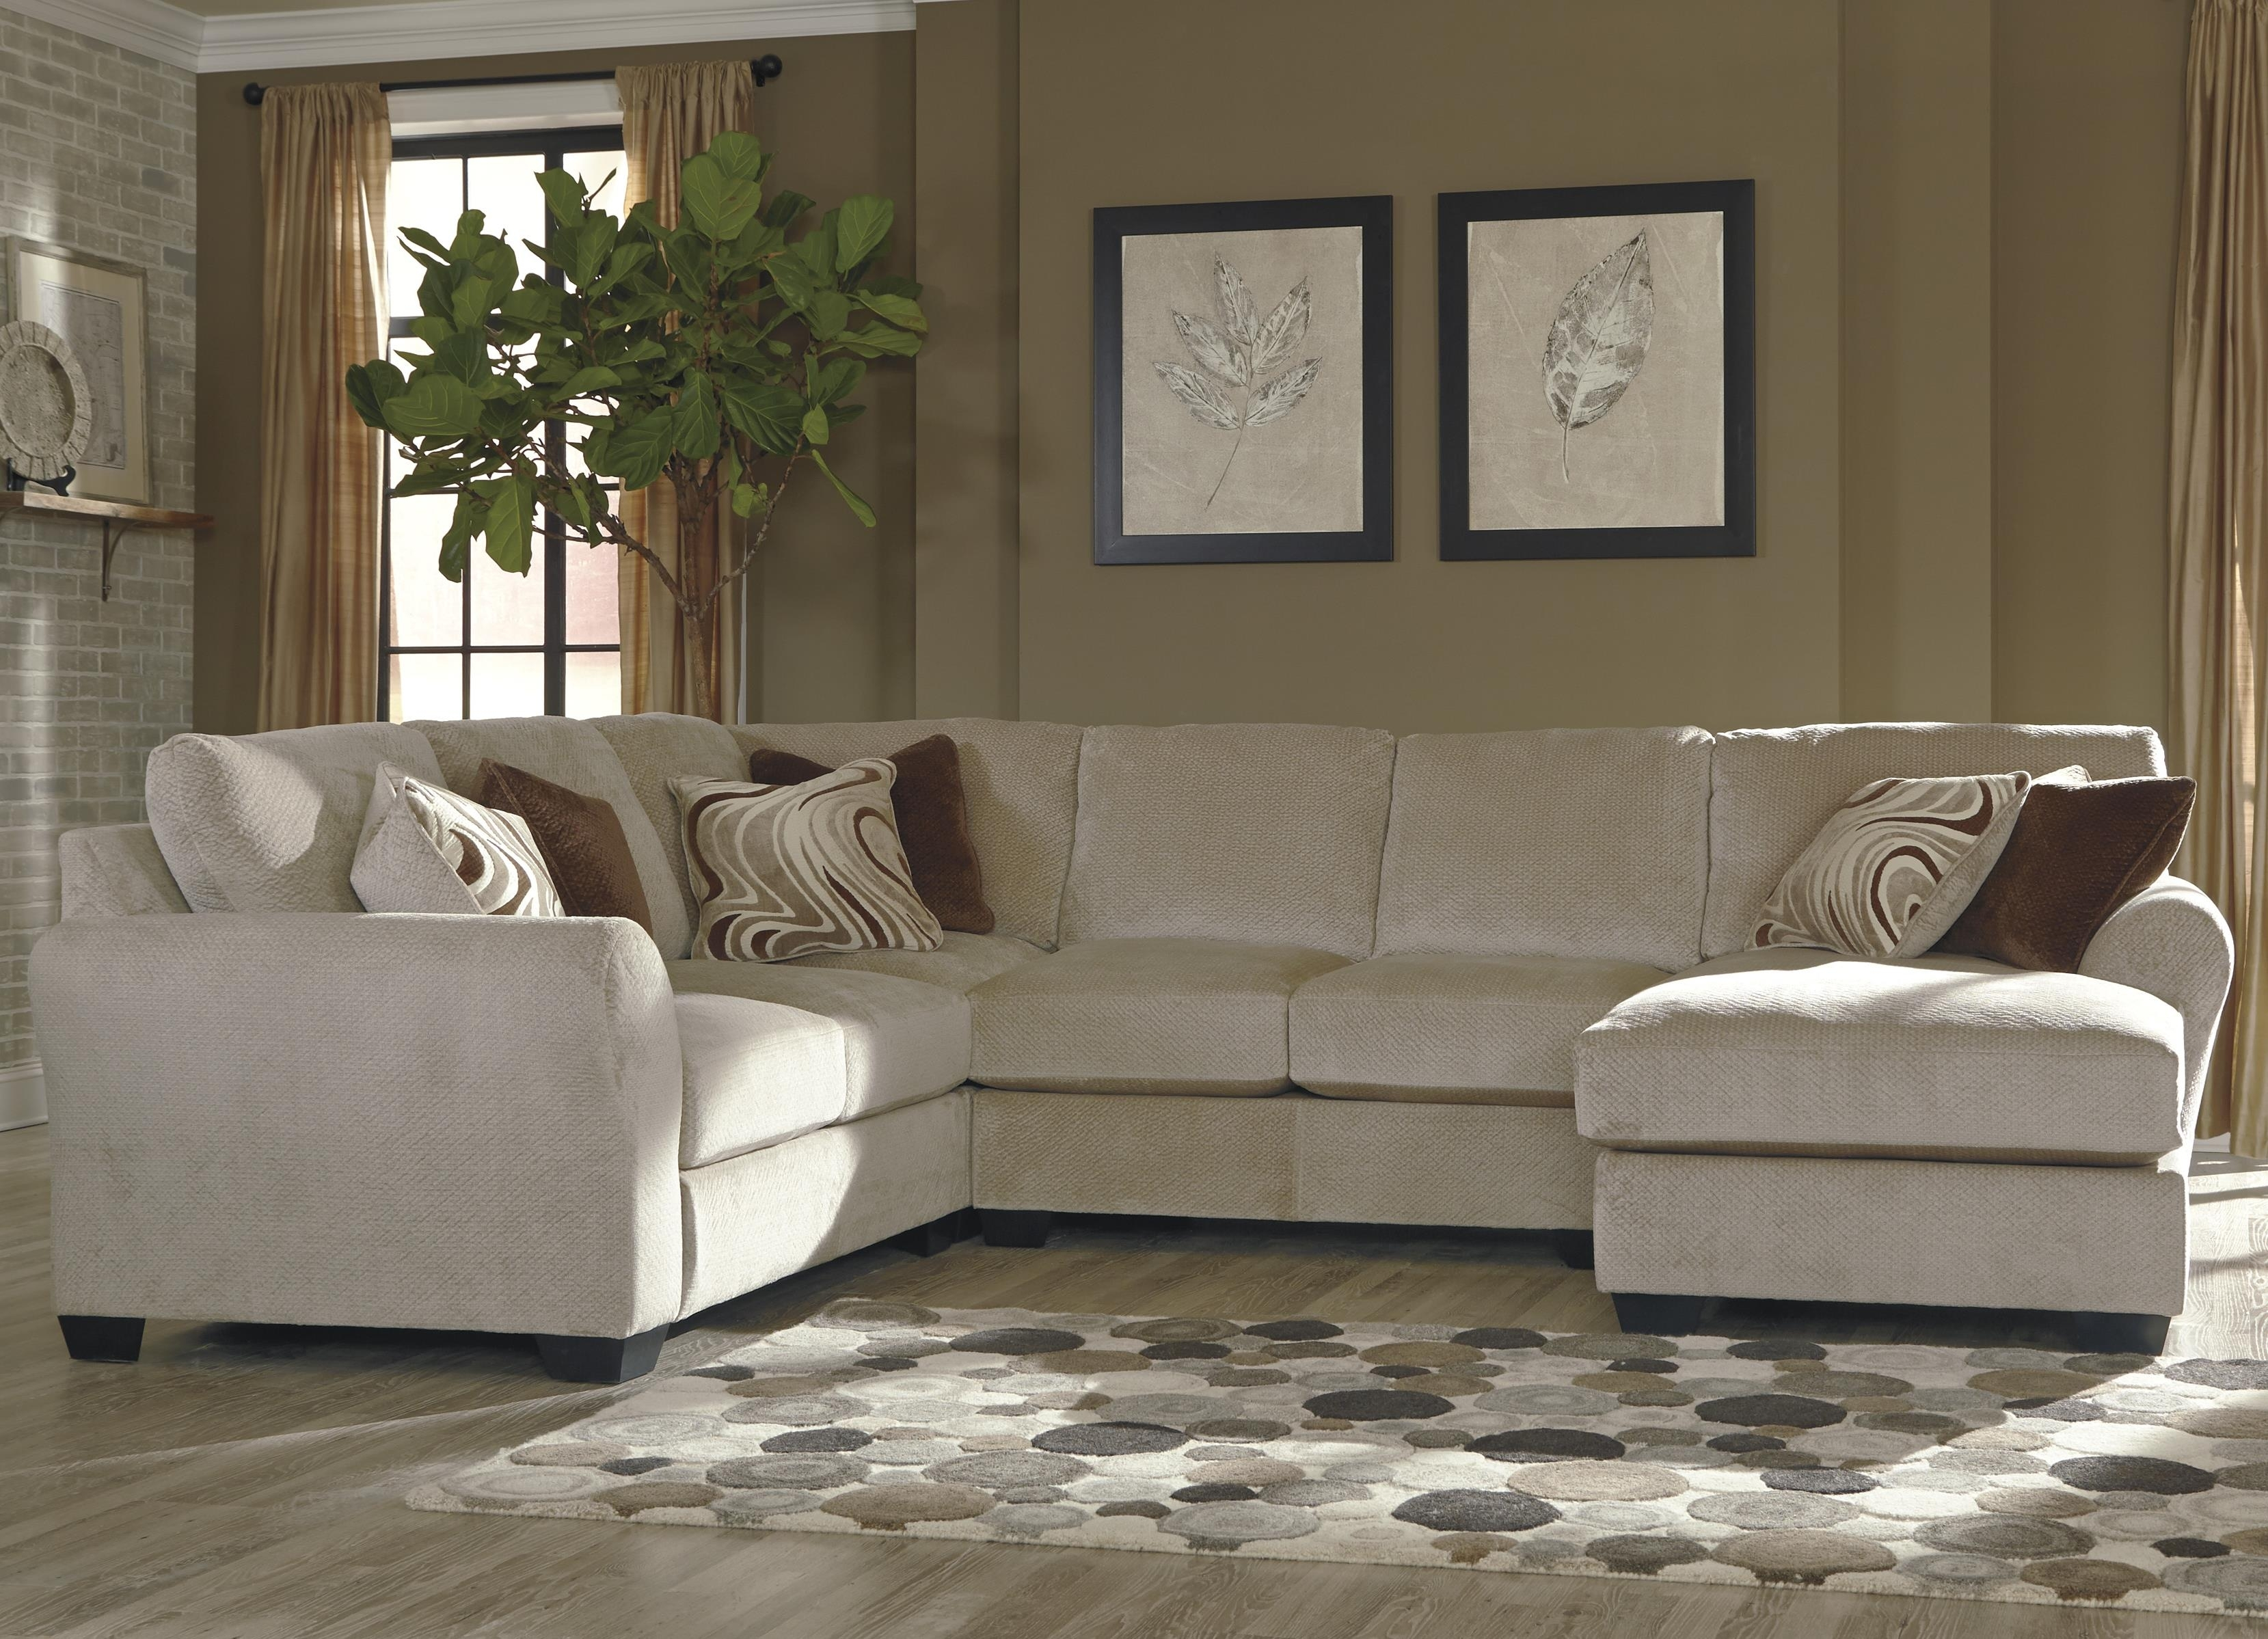 4 Piece Sectional. Beautiful Piece Dellara 4Piece Sectional On 4 for Alder 4 Piece Sectionals (Image 4 of 30)